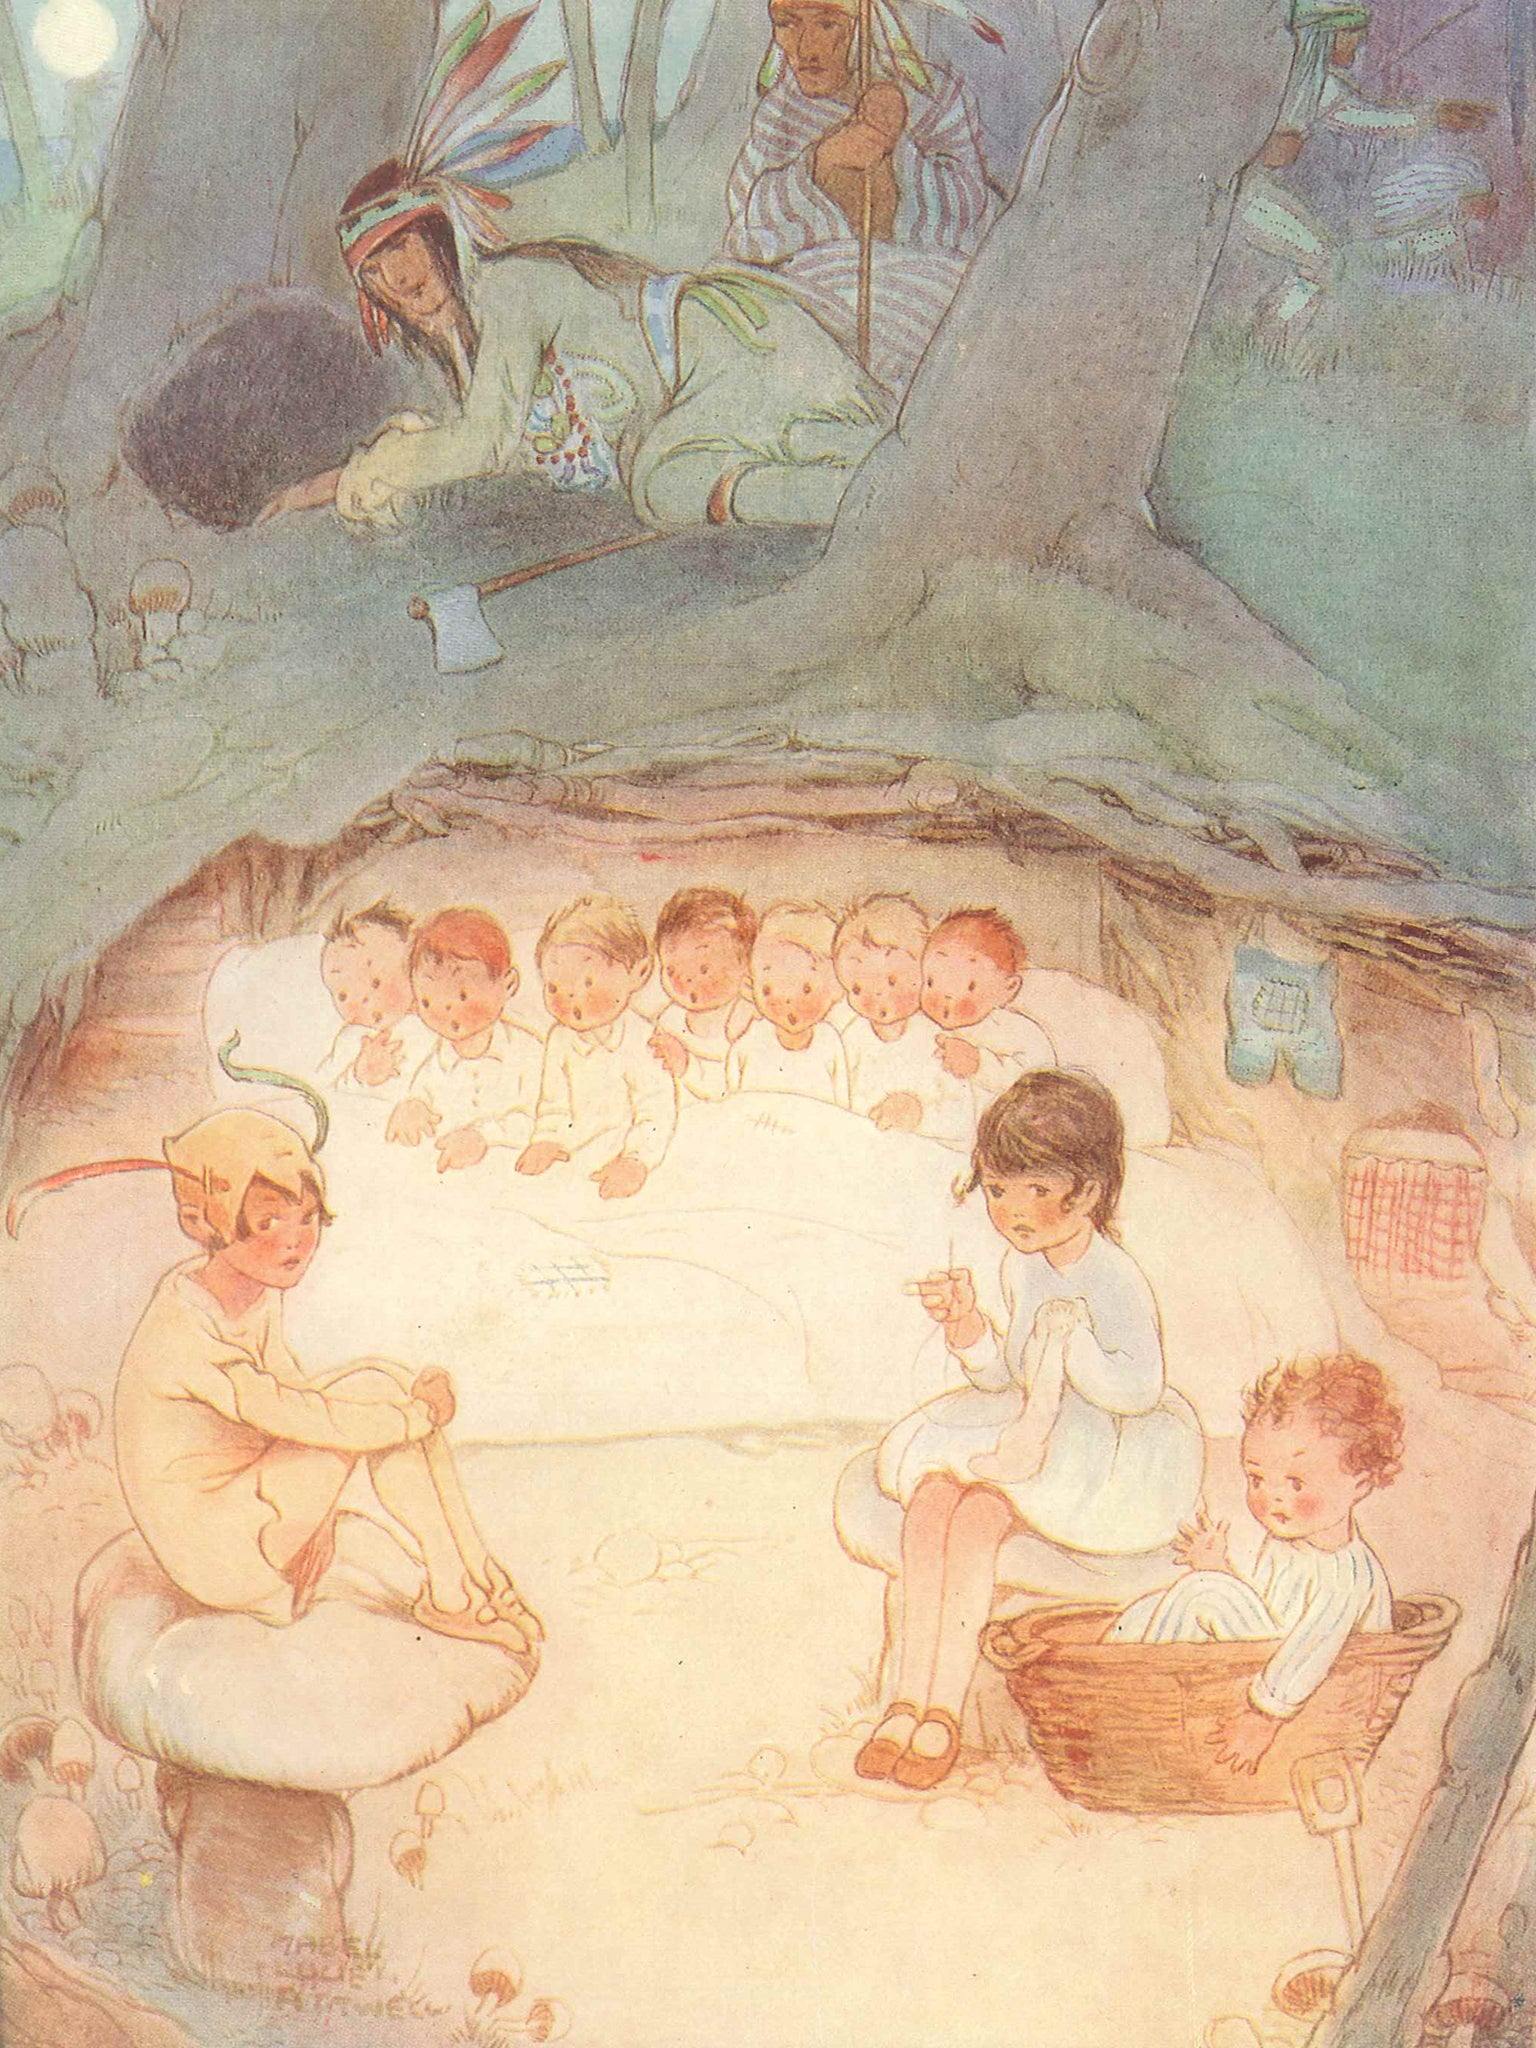 Drawing on Childhood: New exhibition examines why so many of our